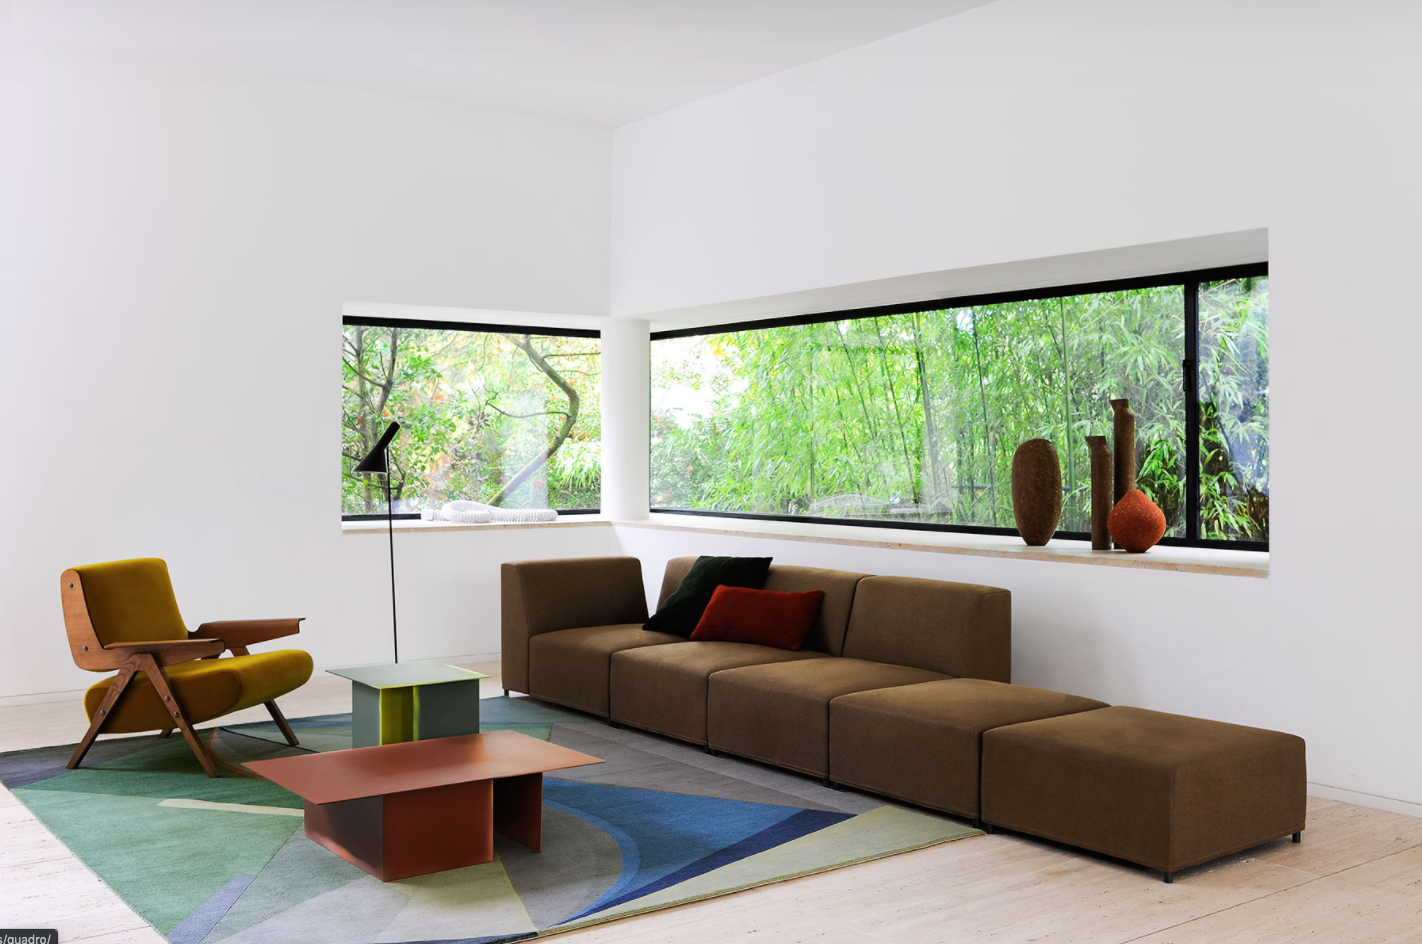 Quadro Sectional Sofa - Quadro is a modular system which enables the formation of sofas, armchairs and ottomans in a variety of combinations and dimensions addressing the needs of any space or environment with simplicity and comfort for large and small spaces. All covers are removable. | Matter of Stuff